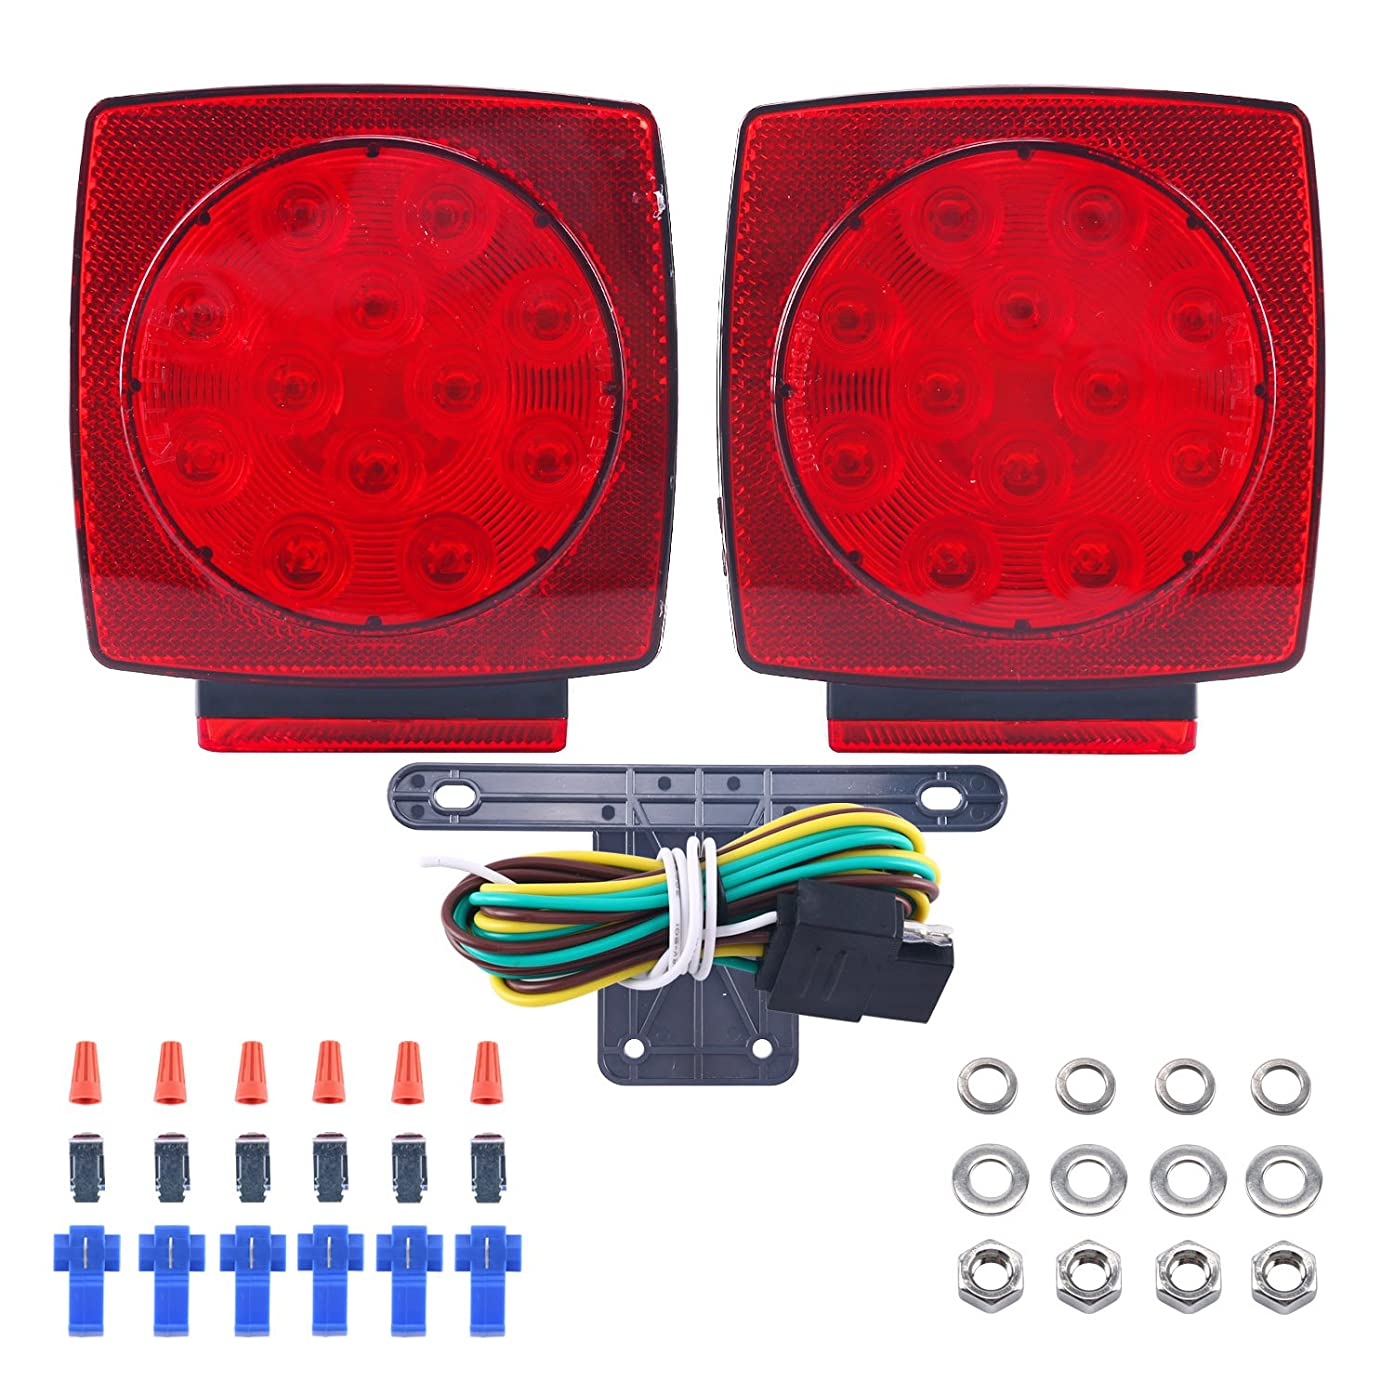 DasMarine 2PCS 12V LED Submersible Trailer Tail Light Kit Stop Tail Turn Signal Lights IP68 for Over 80 Inch Boat Trailer Truck RV Snowmobile with Trailer License Plate Bracket (With Hardware Kit)